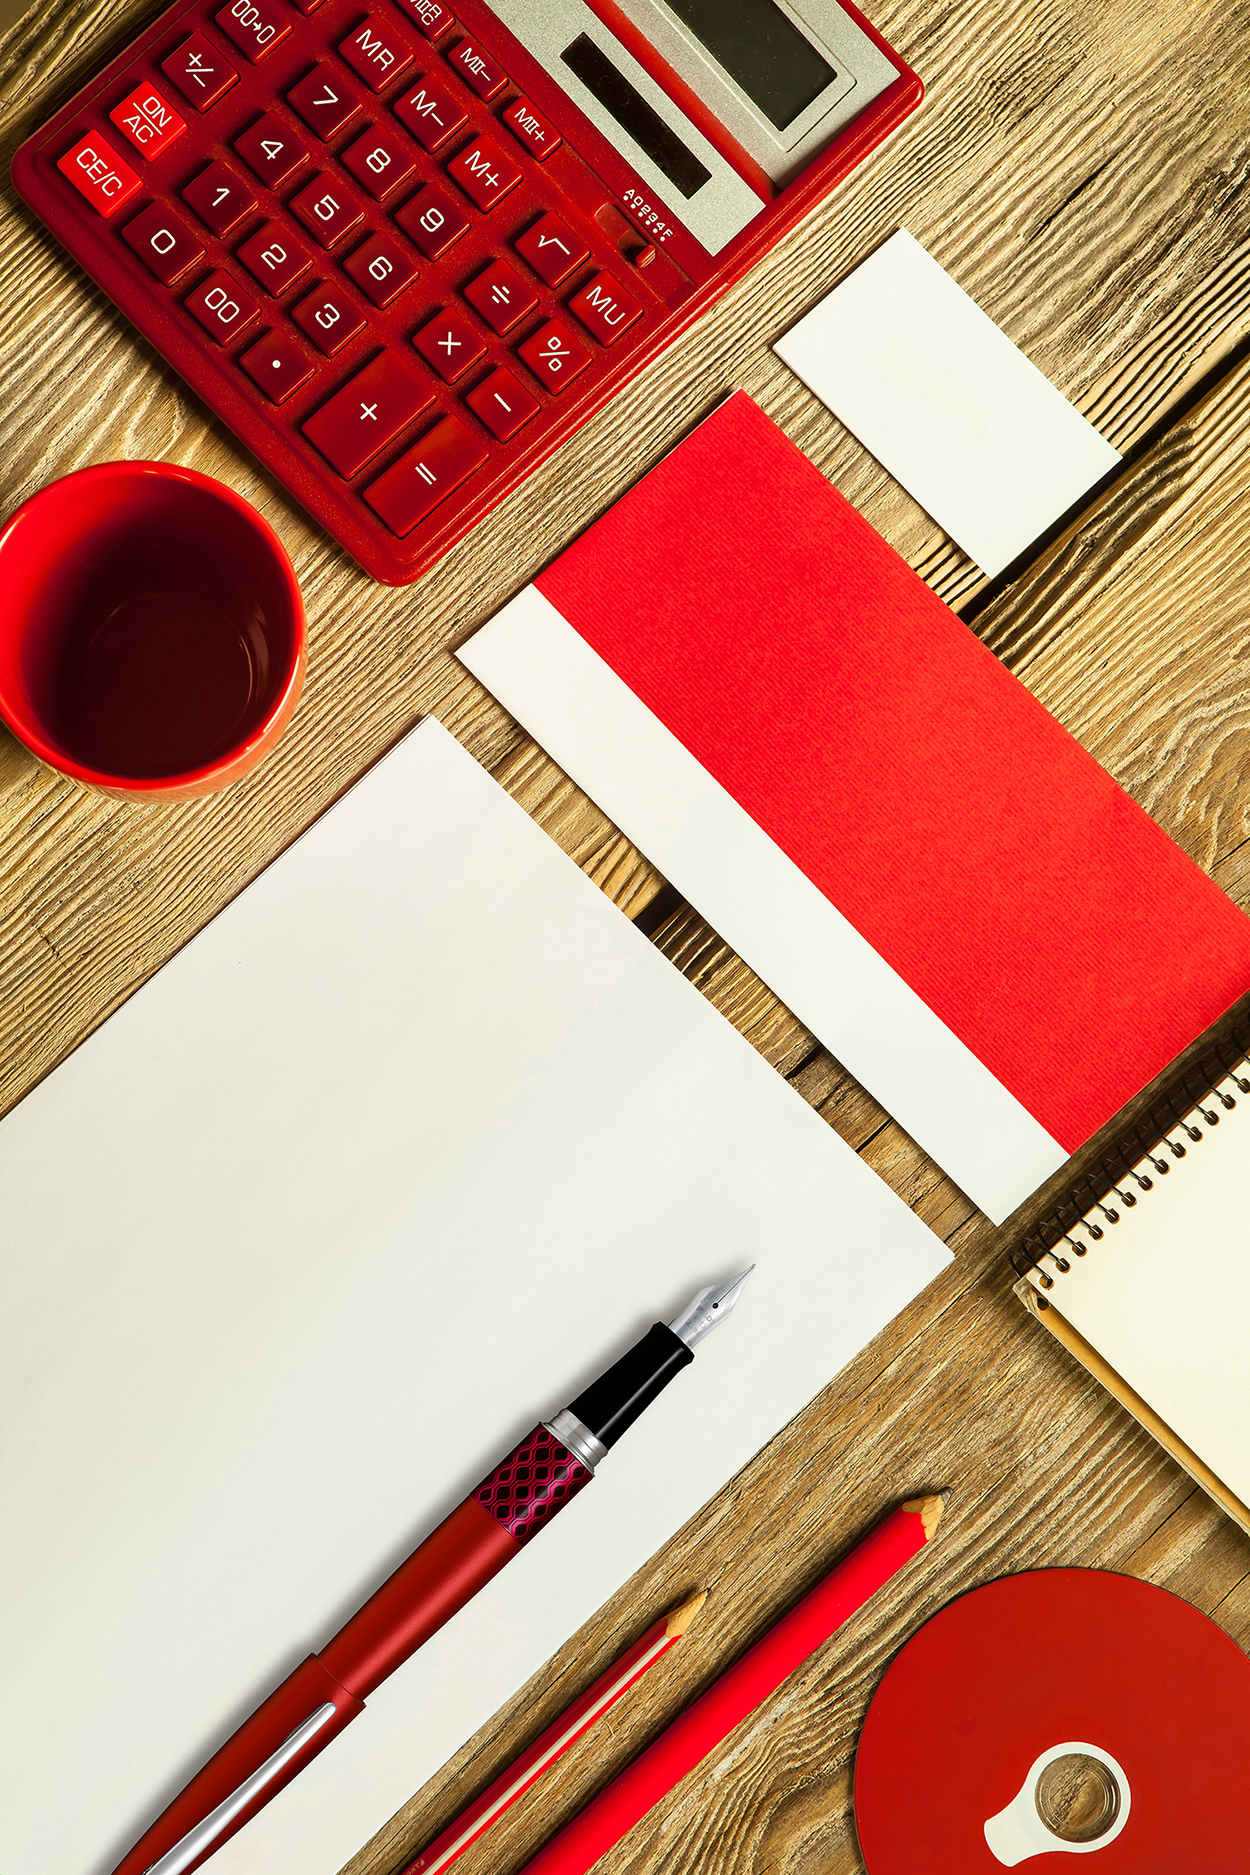 Pilot MR 3 Colourful Red Wave In situ Stationery Flat lay.jpg